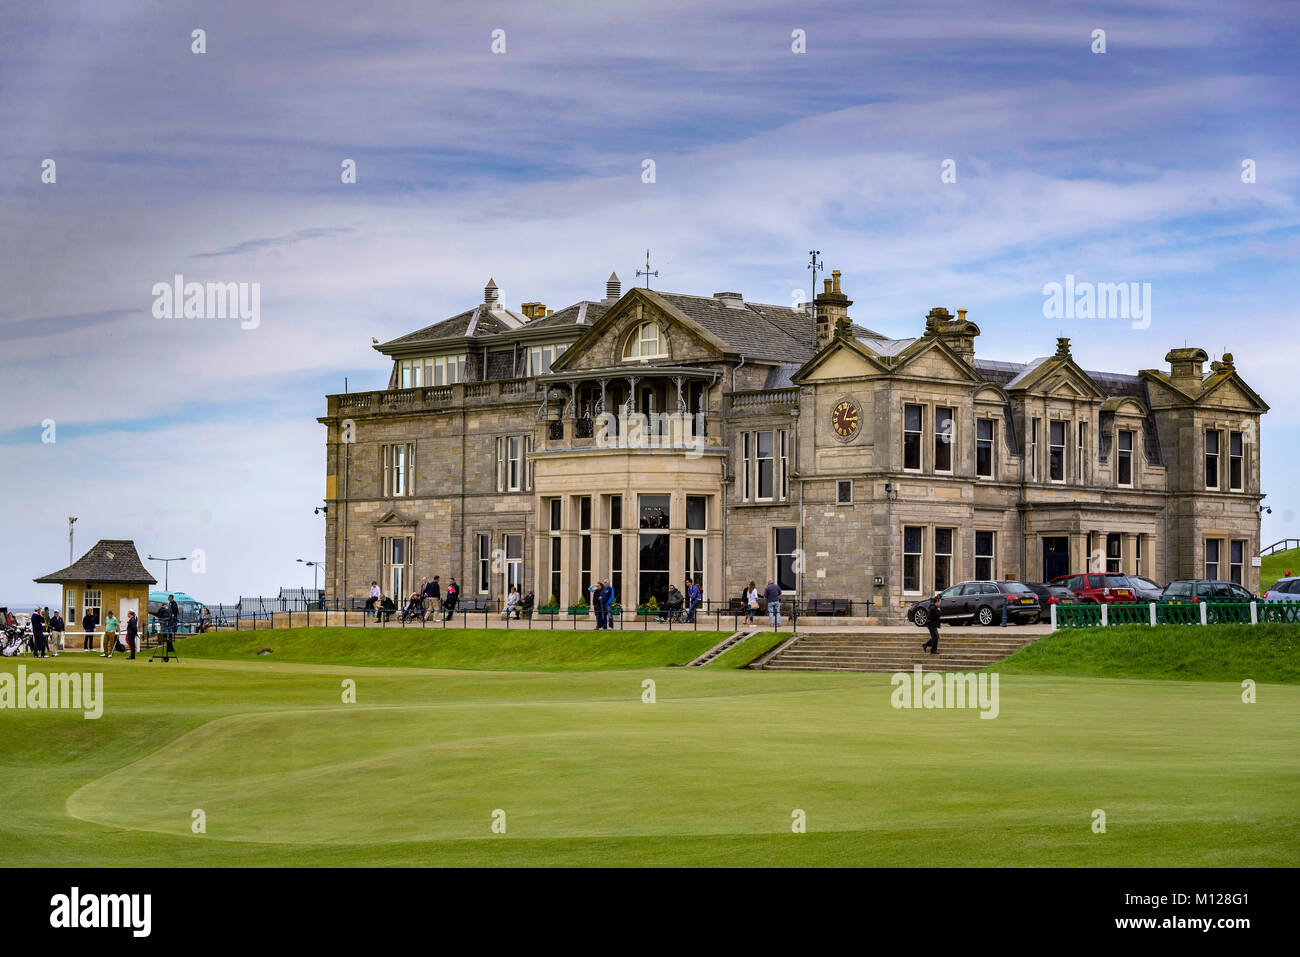 St Andrews clubhouse. - Stock Image